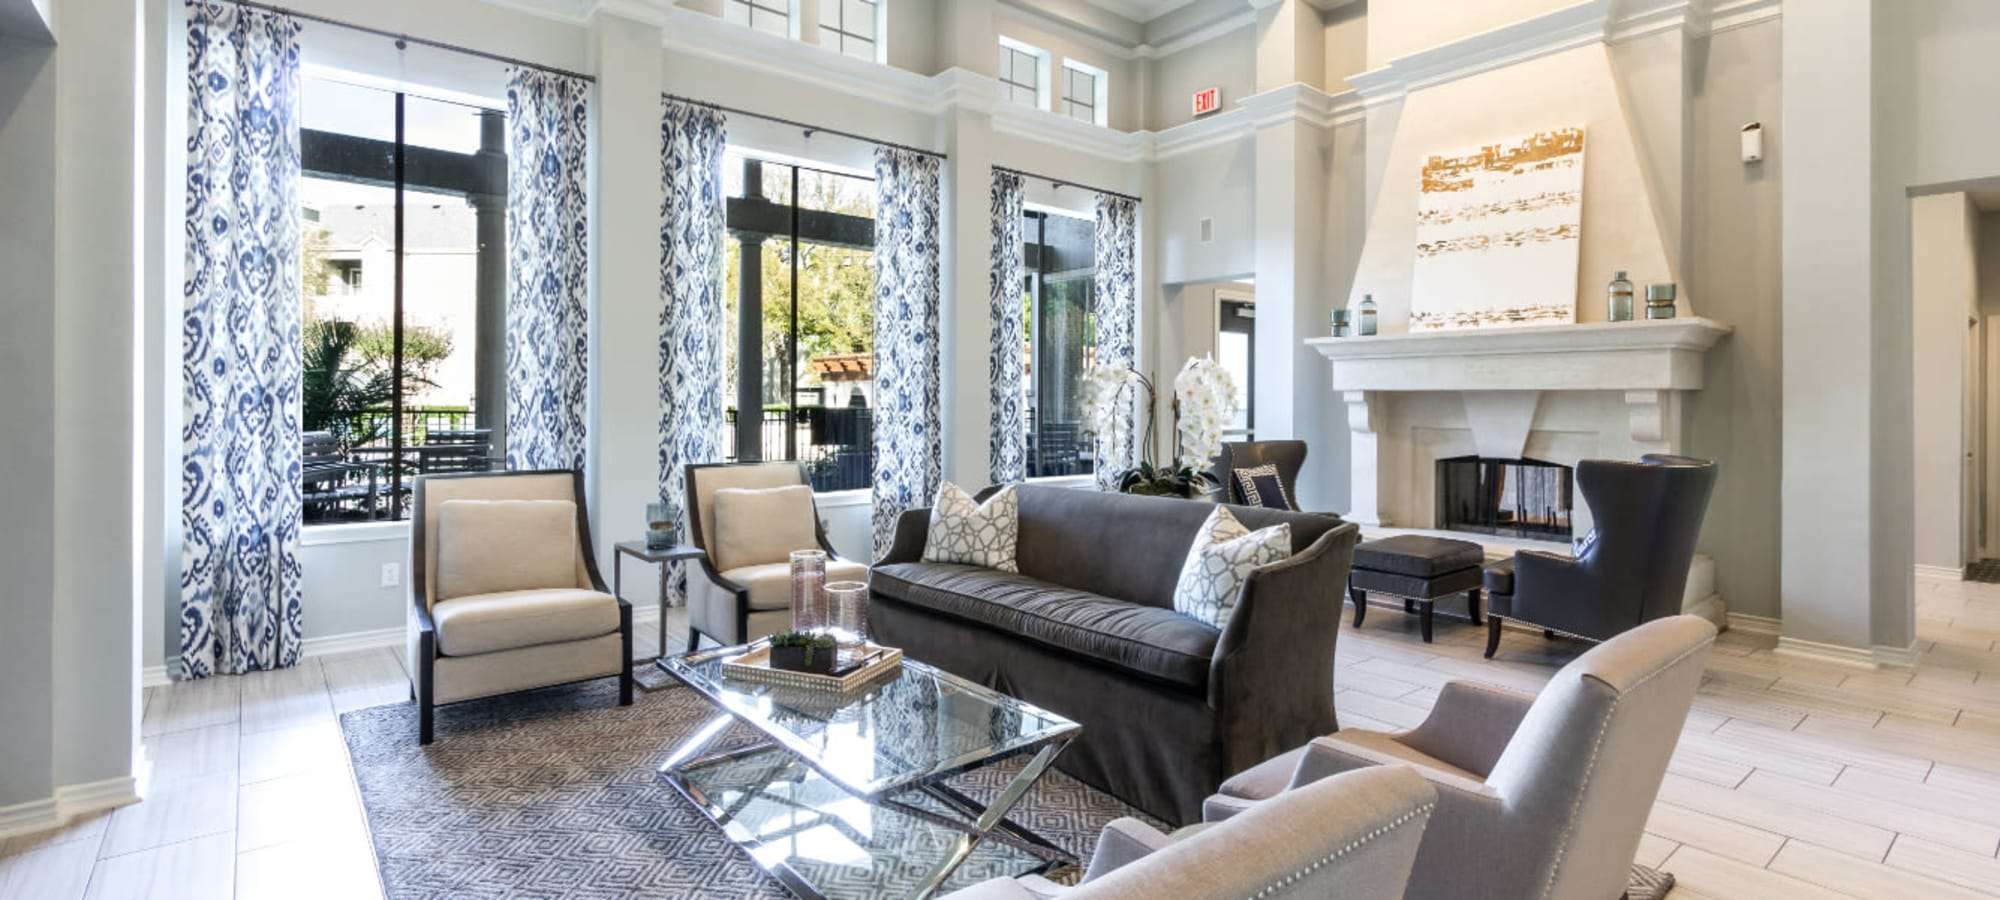 Amenities at Marquis at Stonegate in Fort Worth, Texas